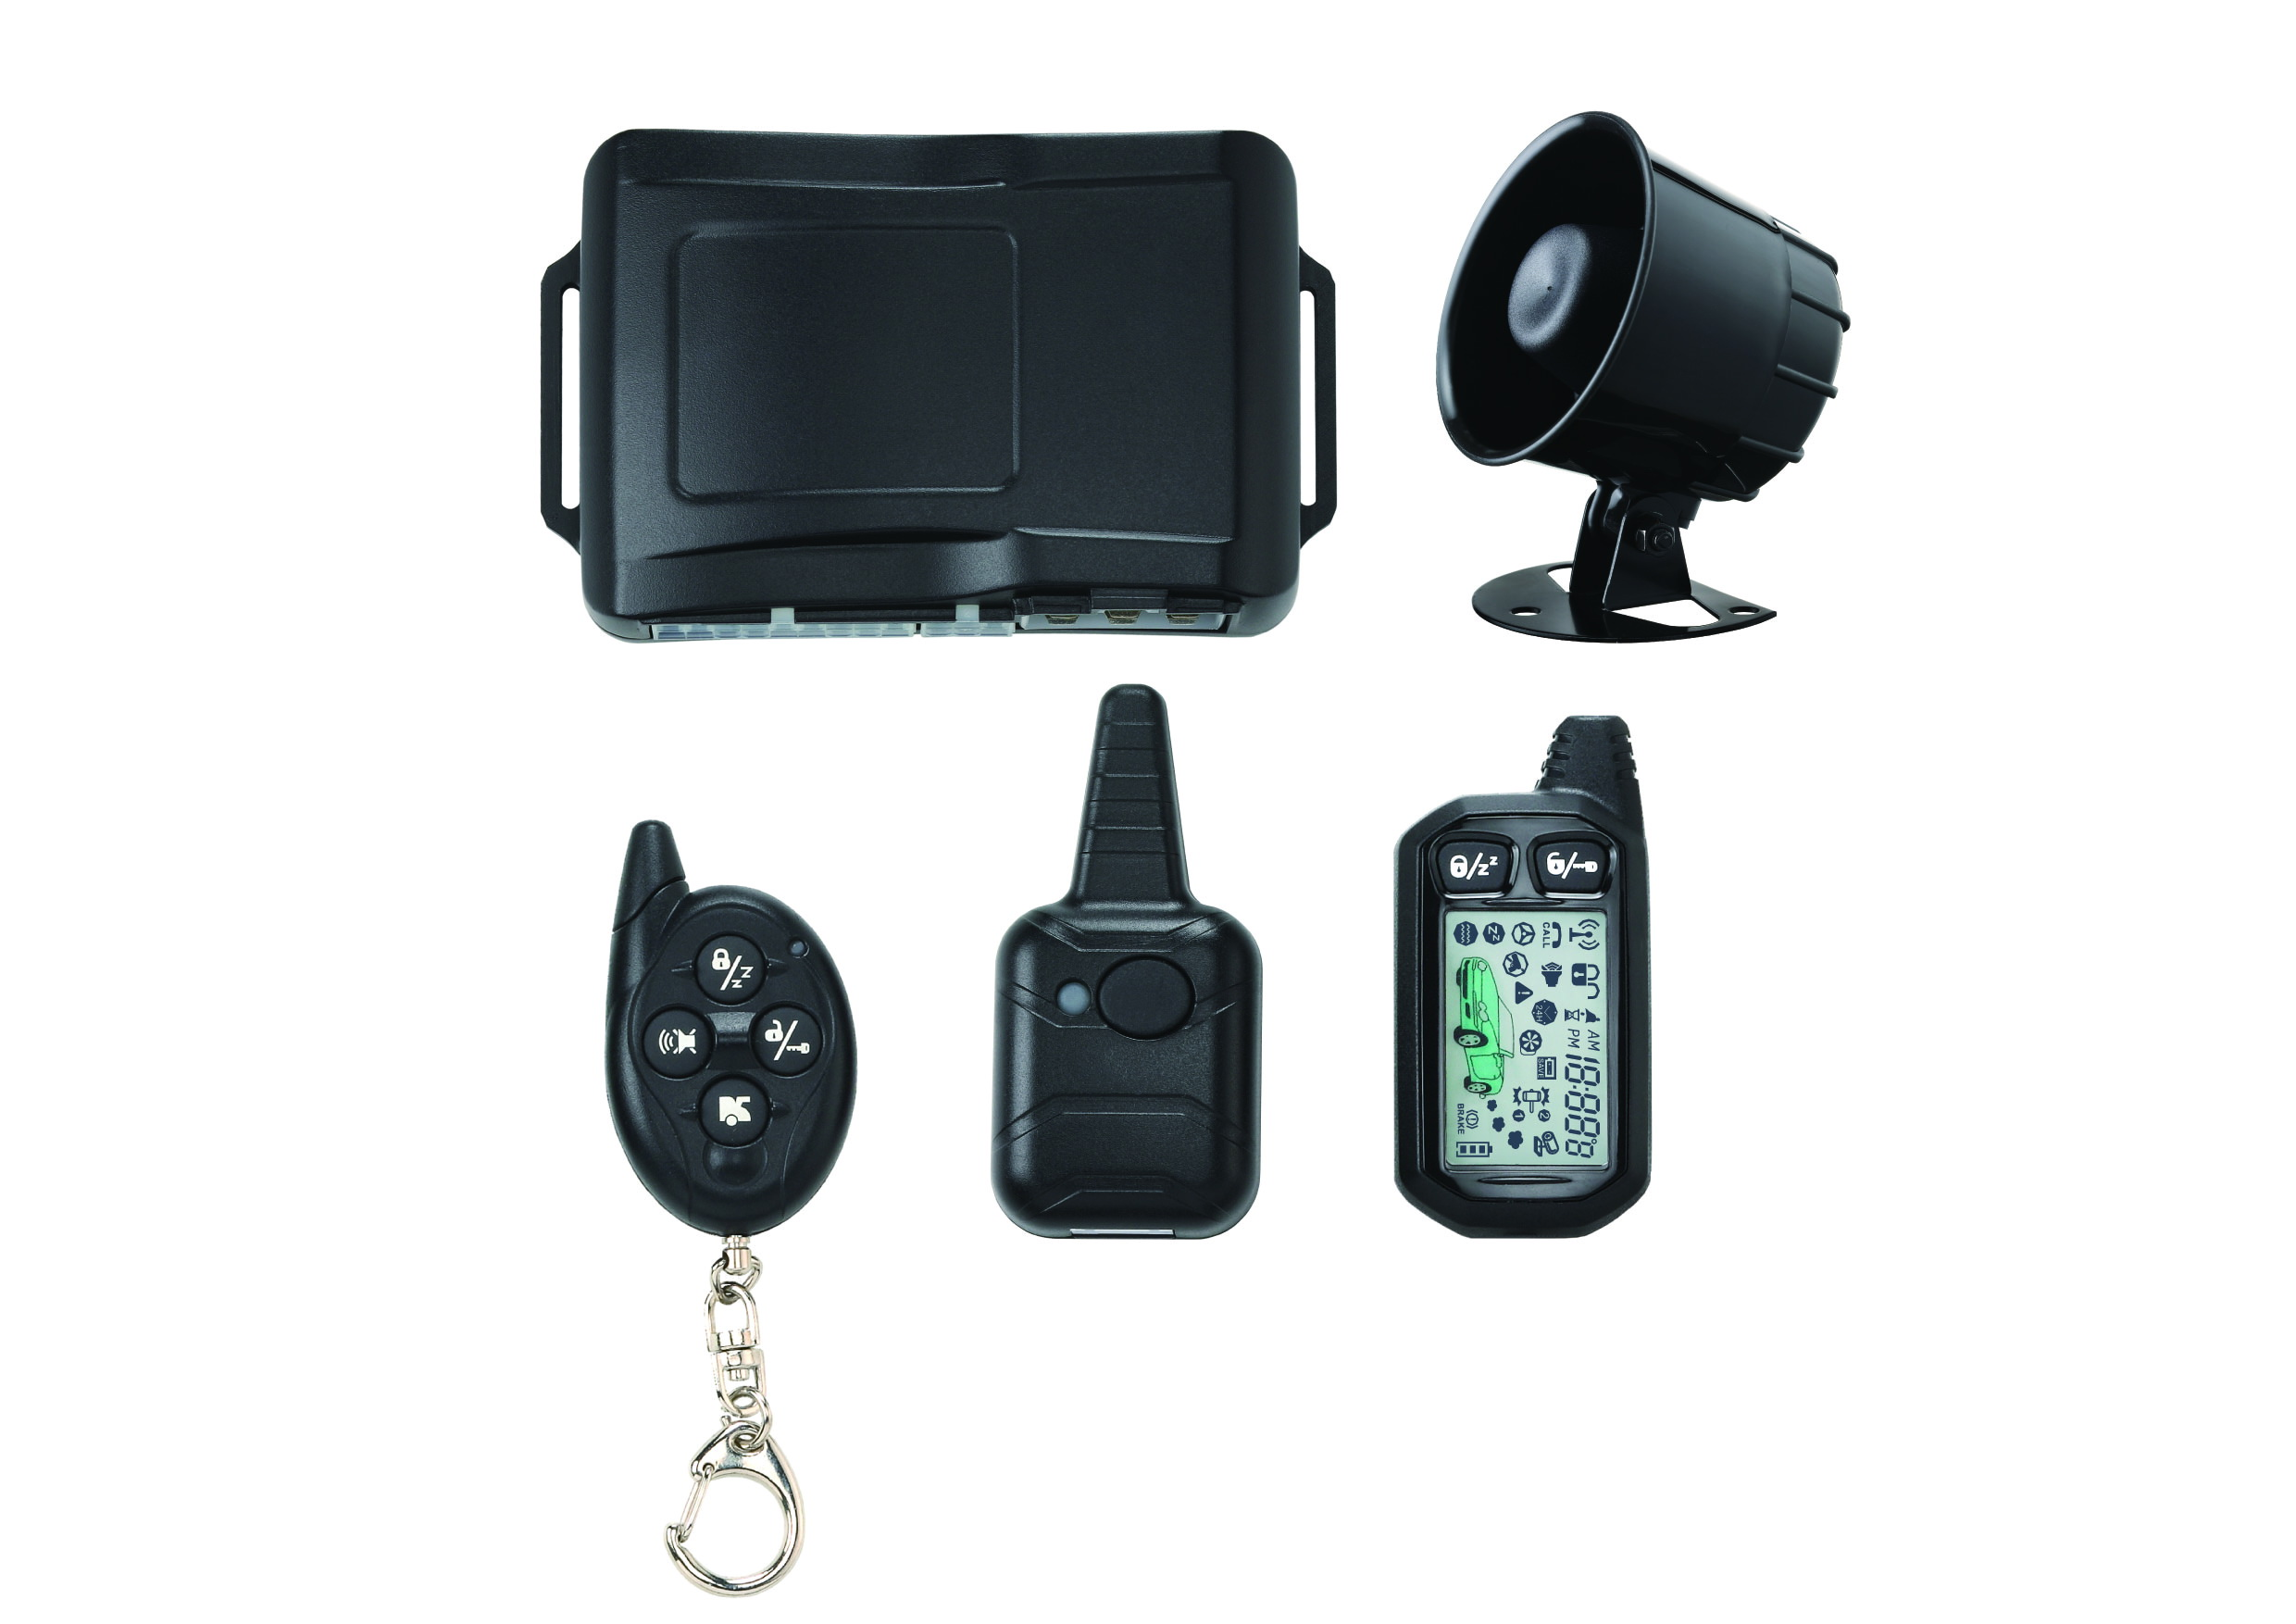 Automotives Manufacturersyisen Technologycar Alarm Systems Remote Starter Product Car 8000 2 Way System